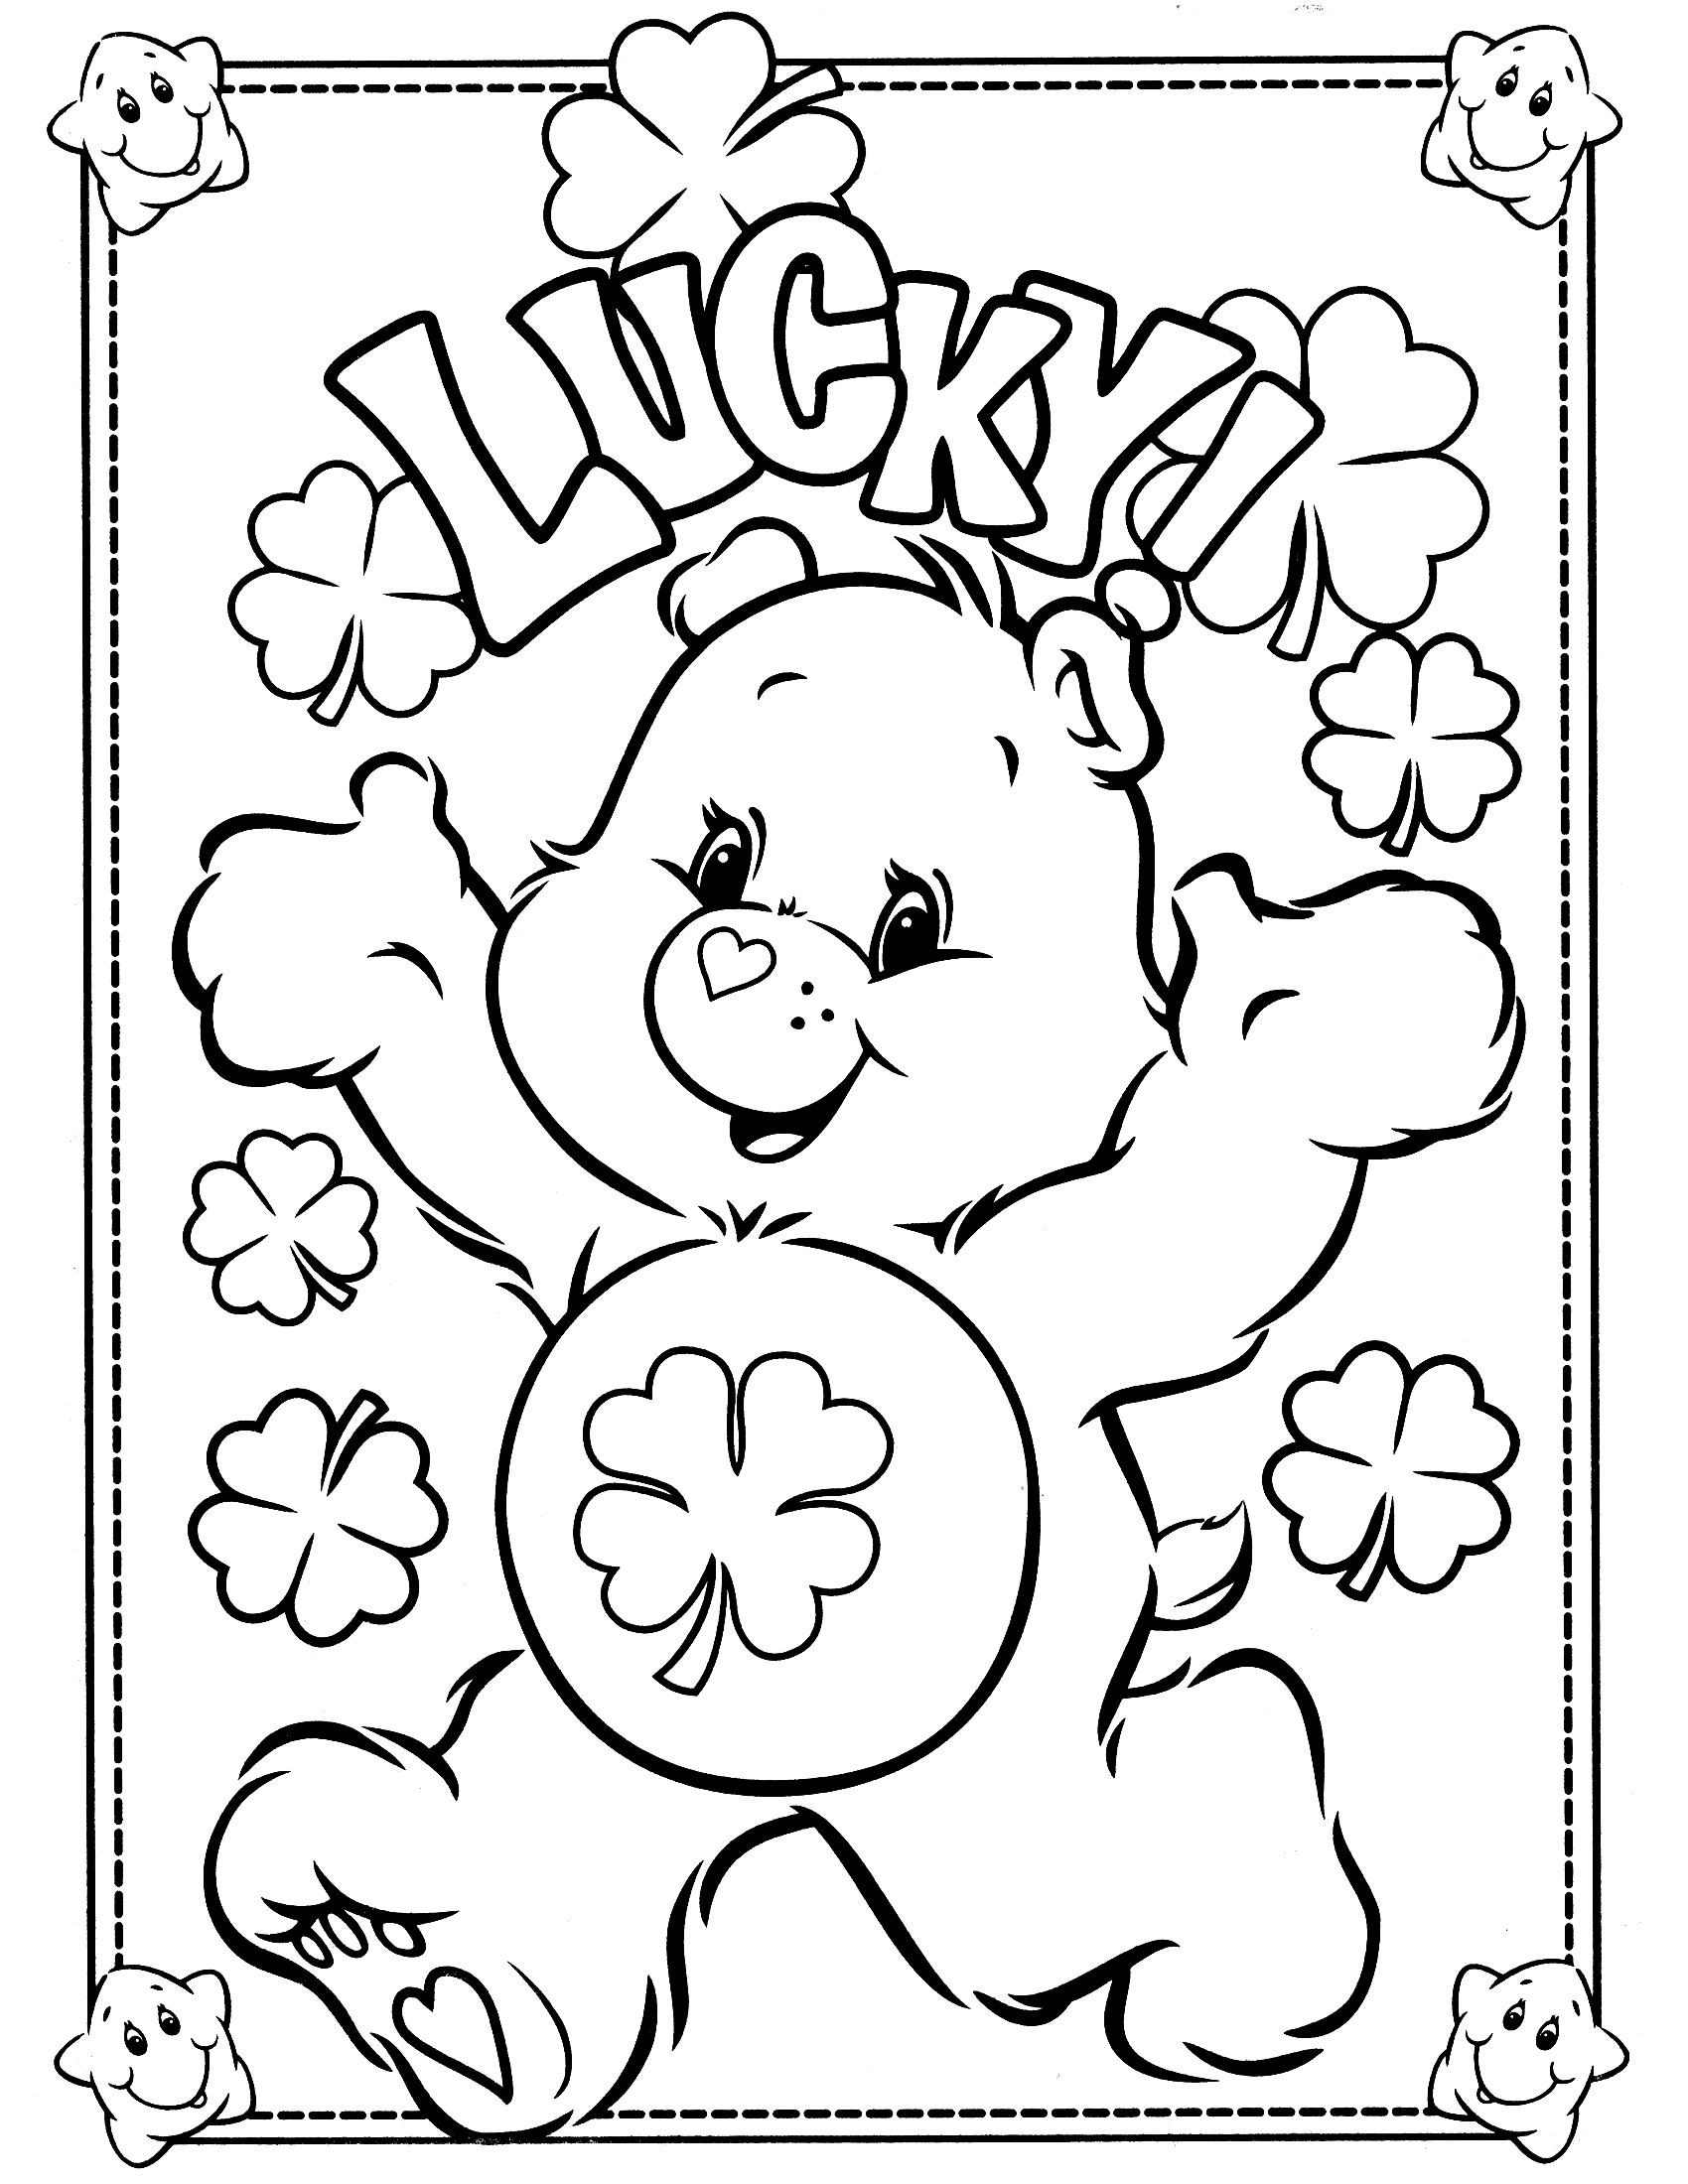 coloring pages for care bares - photo#5